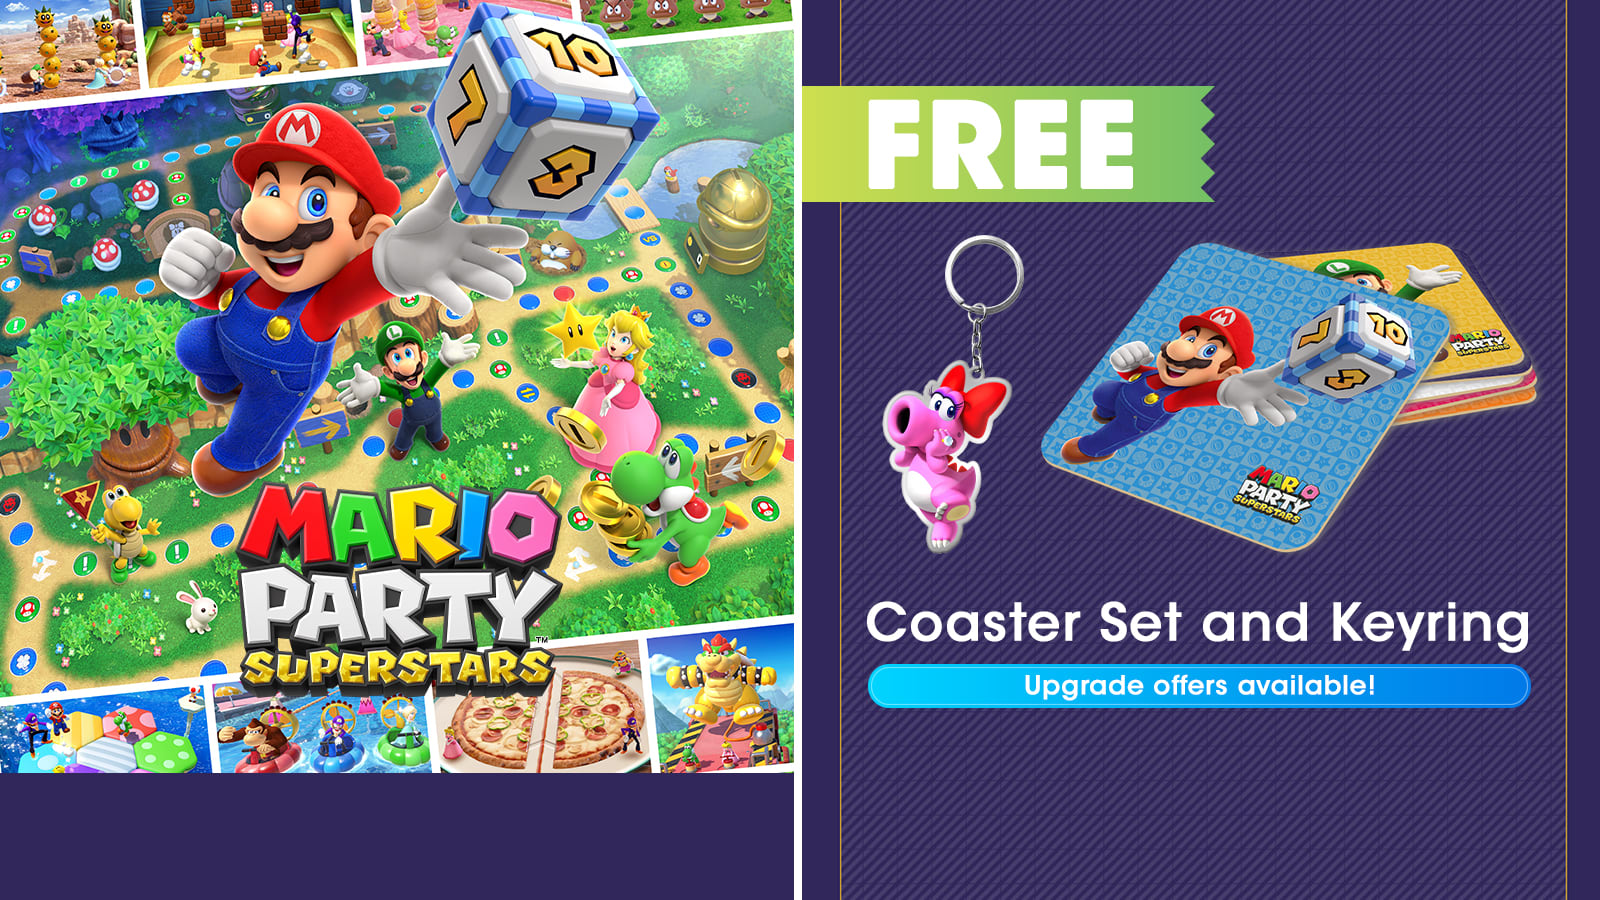 Mario Party Superstars free gift with purchase and upgrade offers available